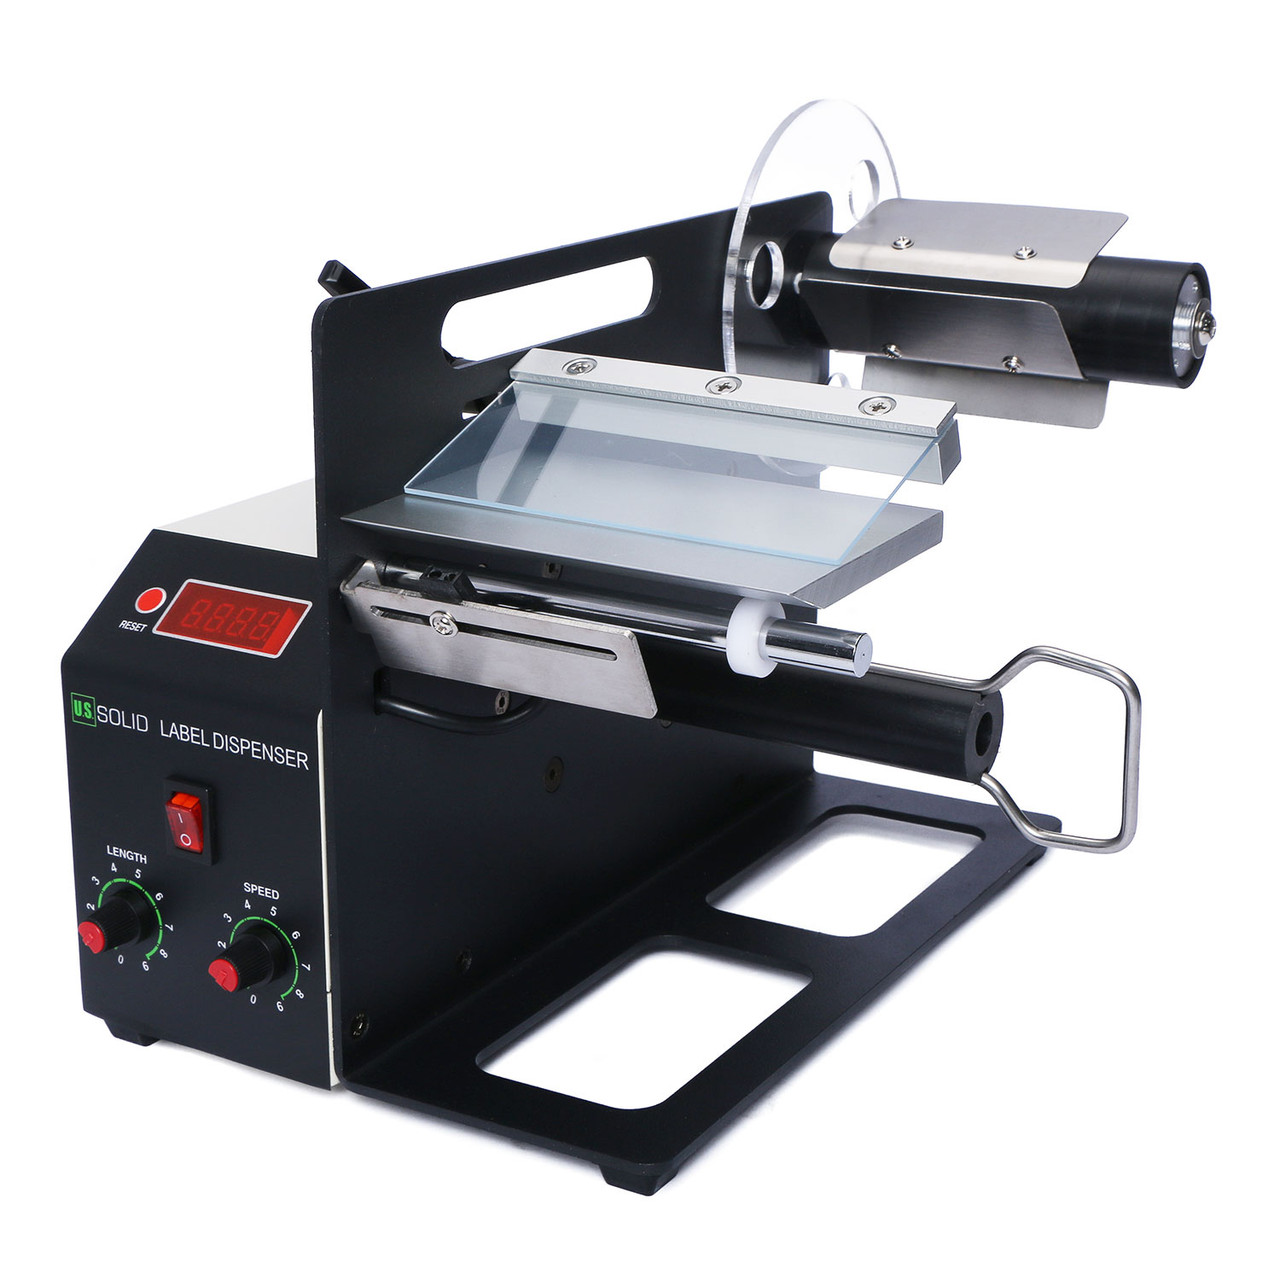 U.S. Solid Automatic Label Dispenser for 4-120 MM Width, 4-200 MM Length Translucent and Opaque Labels